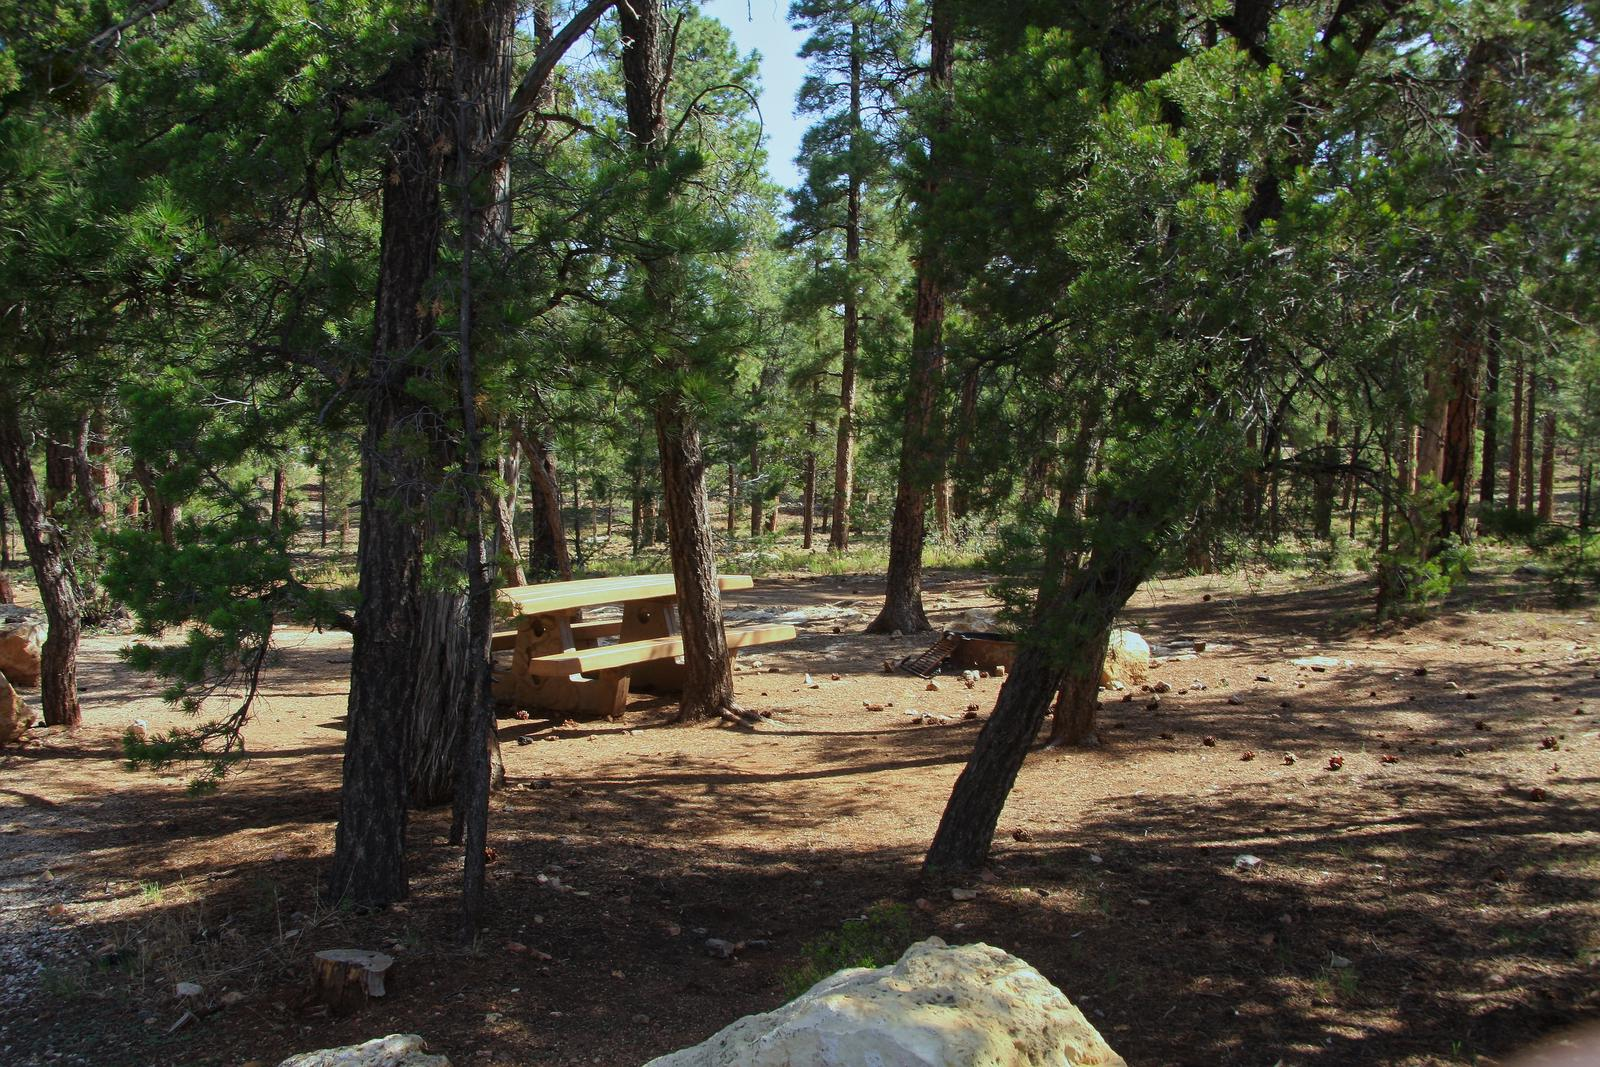 Picnic table, fire pit, and park spot, Mather CampgroundPicnic table, fire pit, and park spot for Oak Loop 229, Mather Campground